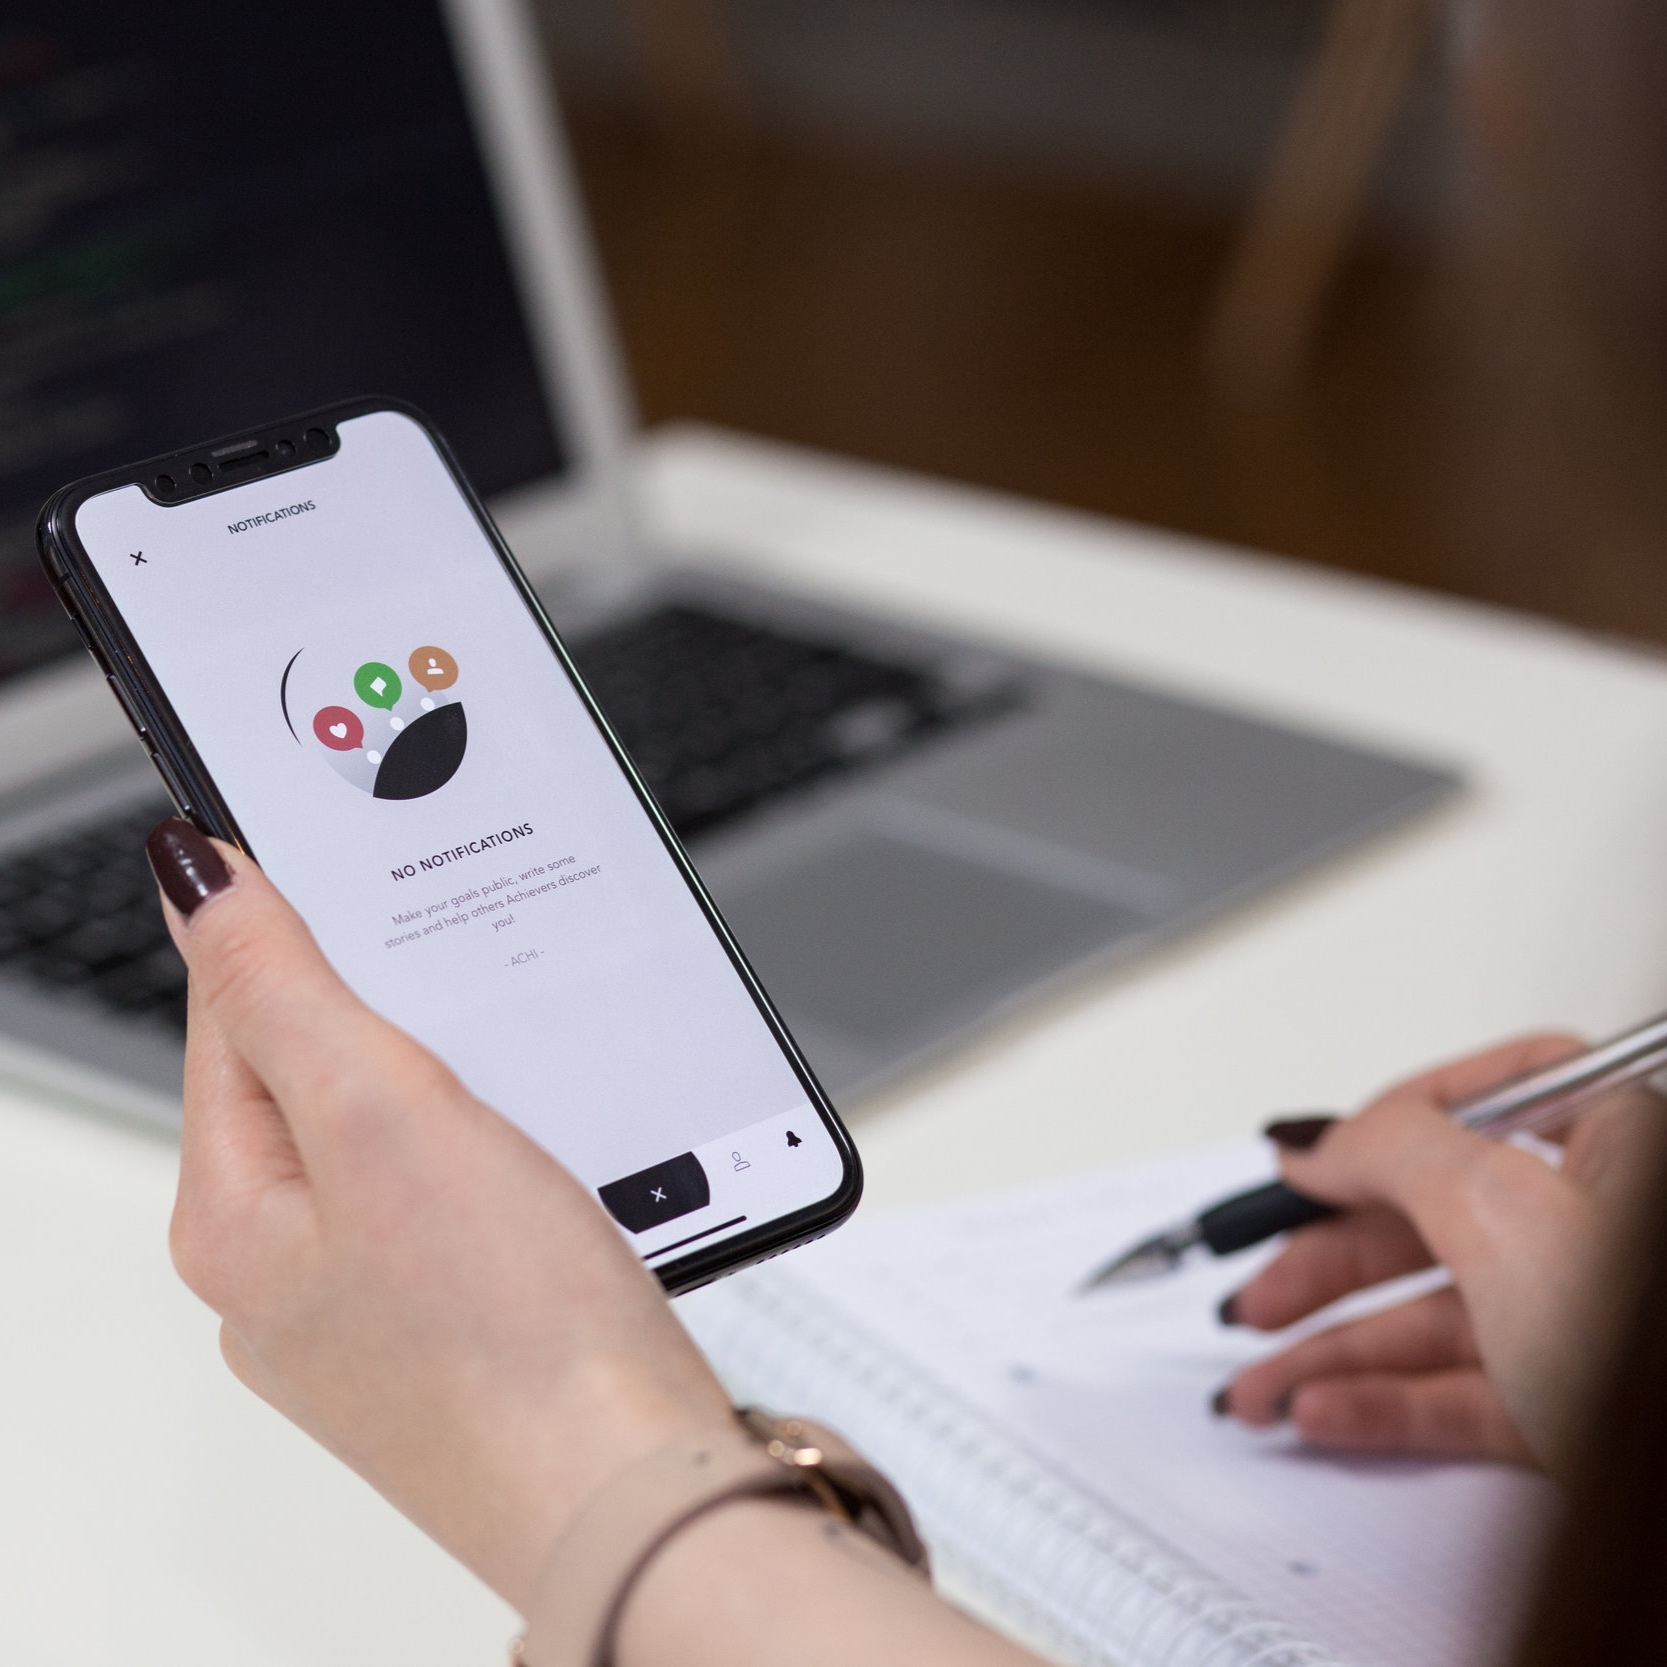 Usability Testing - App usability is so important to get right. If you don't have the ability to easily run usability testing internally then we can provide quick usability testing and expert reviews to provide you with feedback on what to improve.